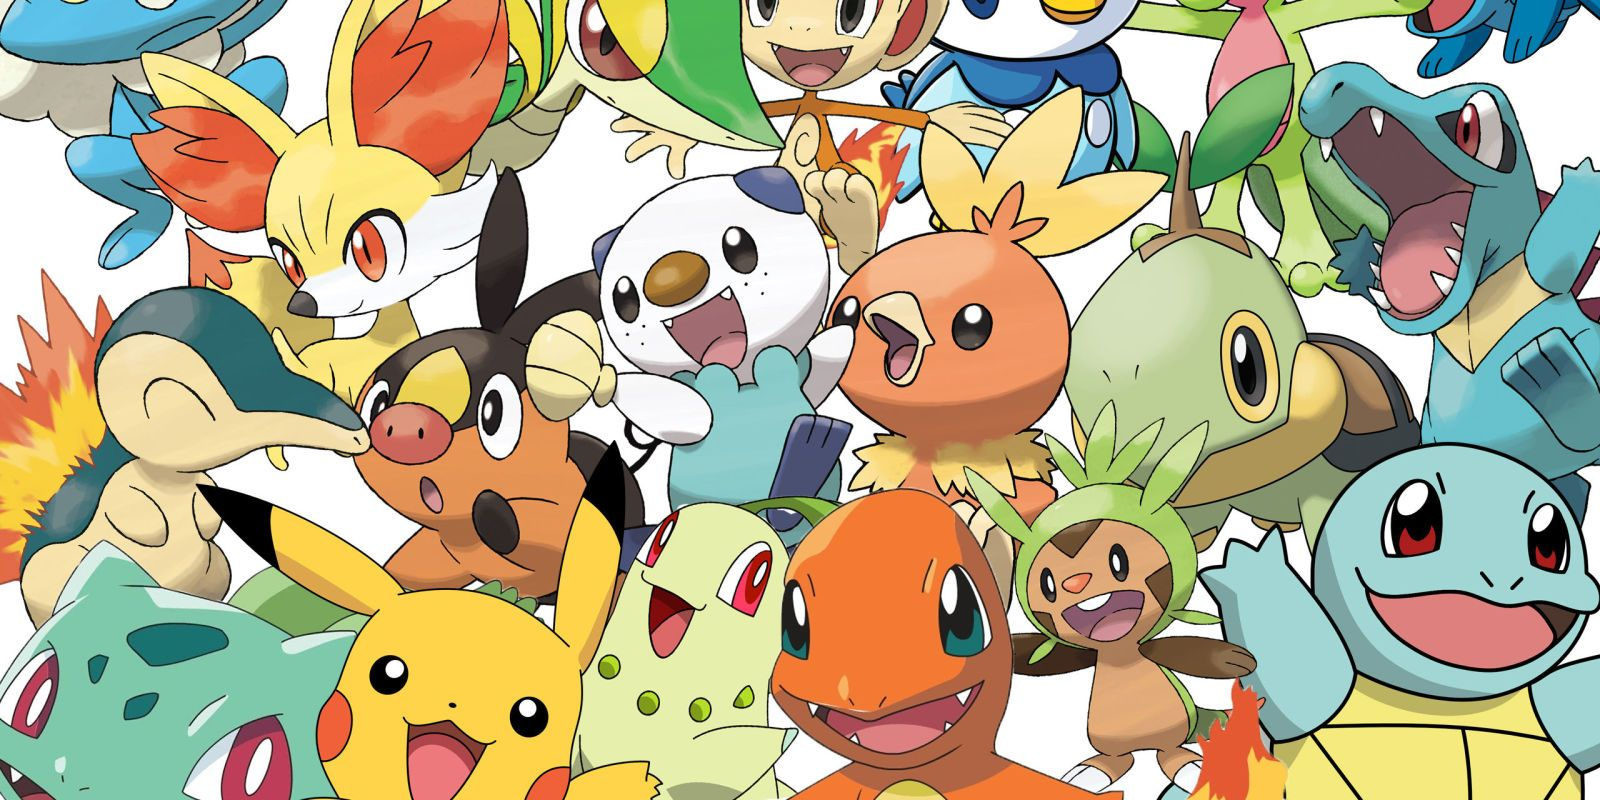 Can You Name These Pokemon By Their Picture